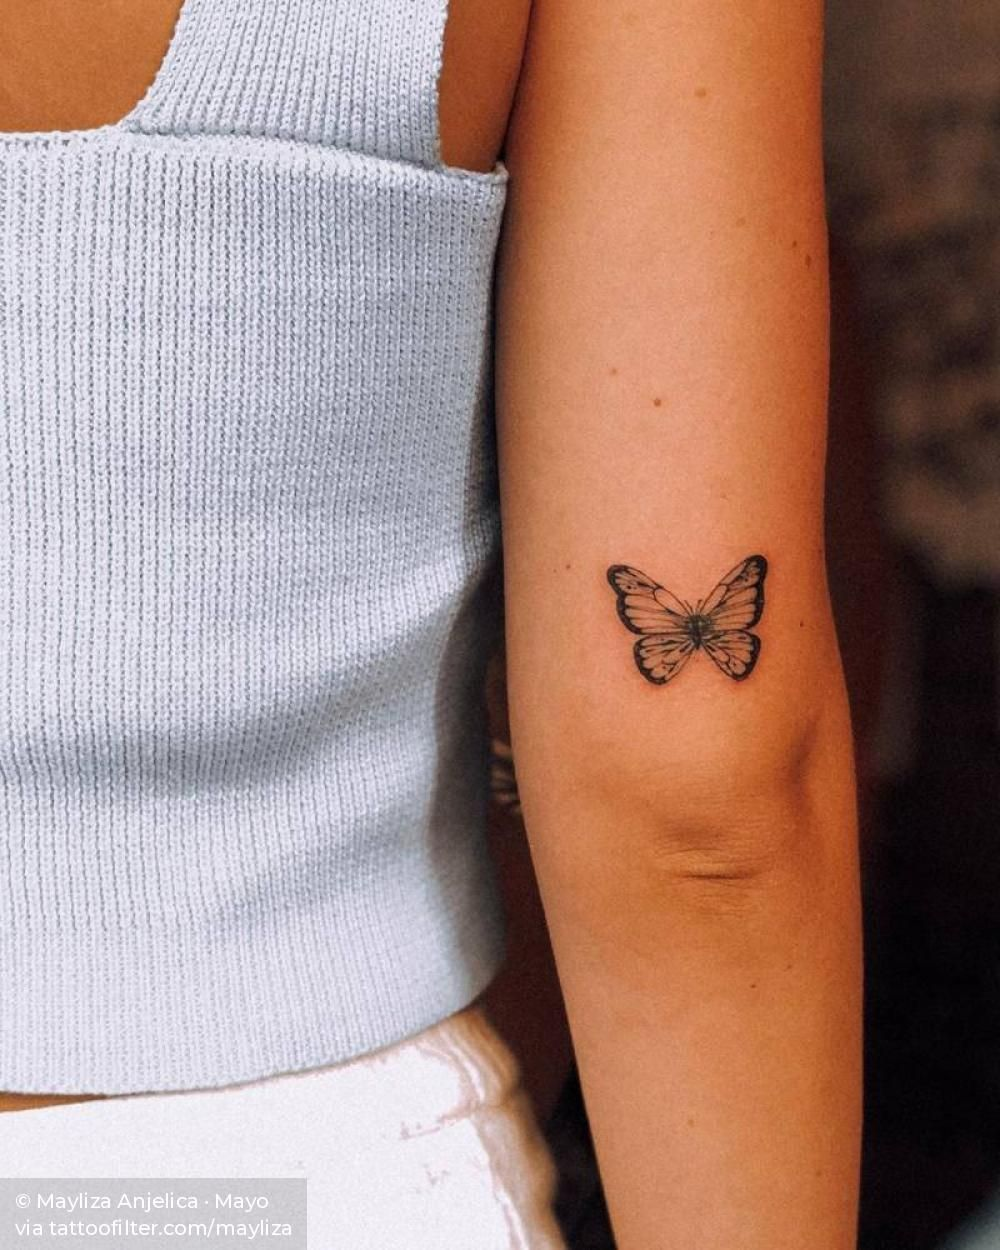 Photo of Butterfly tattoo on the back of the right arm.